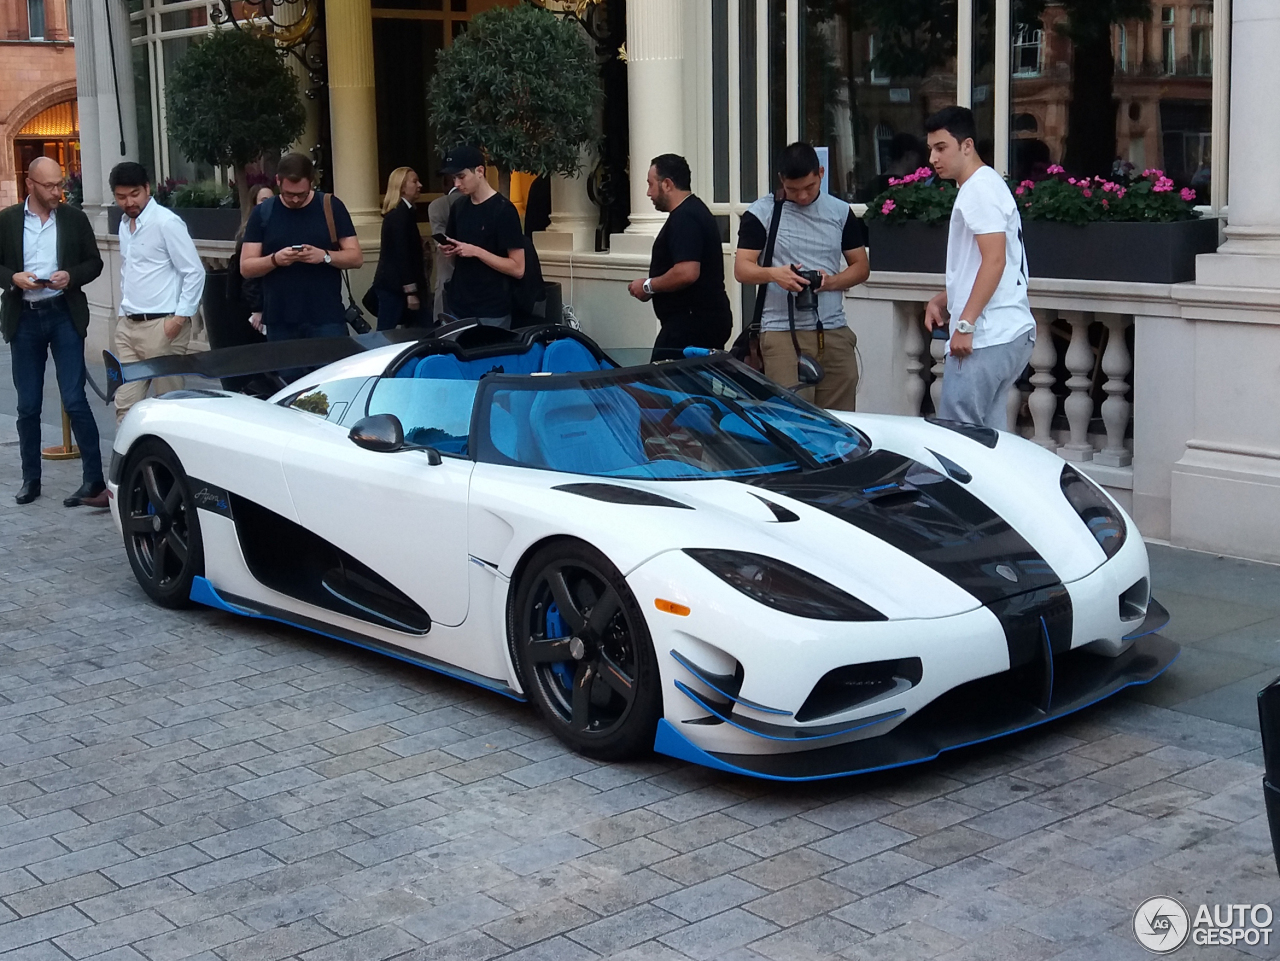 Koenigsegg Agera RS1 - 2 August 2017 - Autogespot